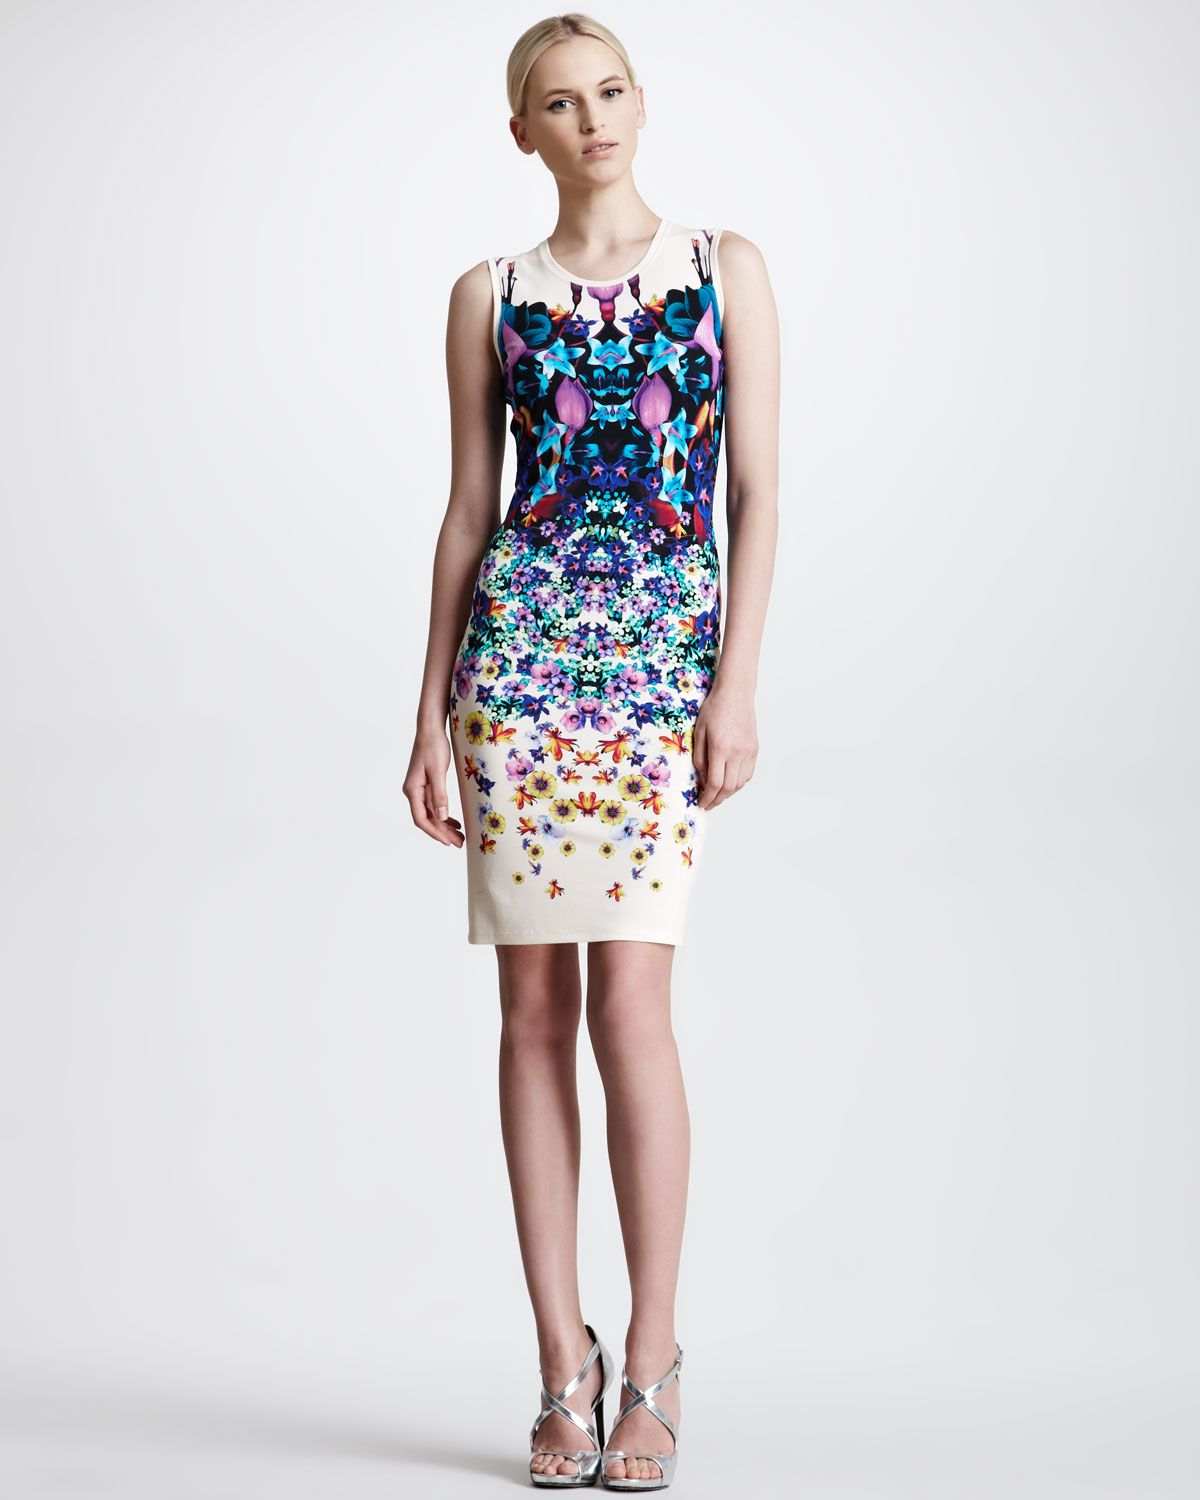 72625ab2fbfc9 Sleeveless Symmetric Floral-Print Dress - Roberto Cavalli. Usually I'm all,  'Whatever with your cougar-dresses, Mr. Cavalli